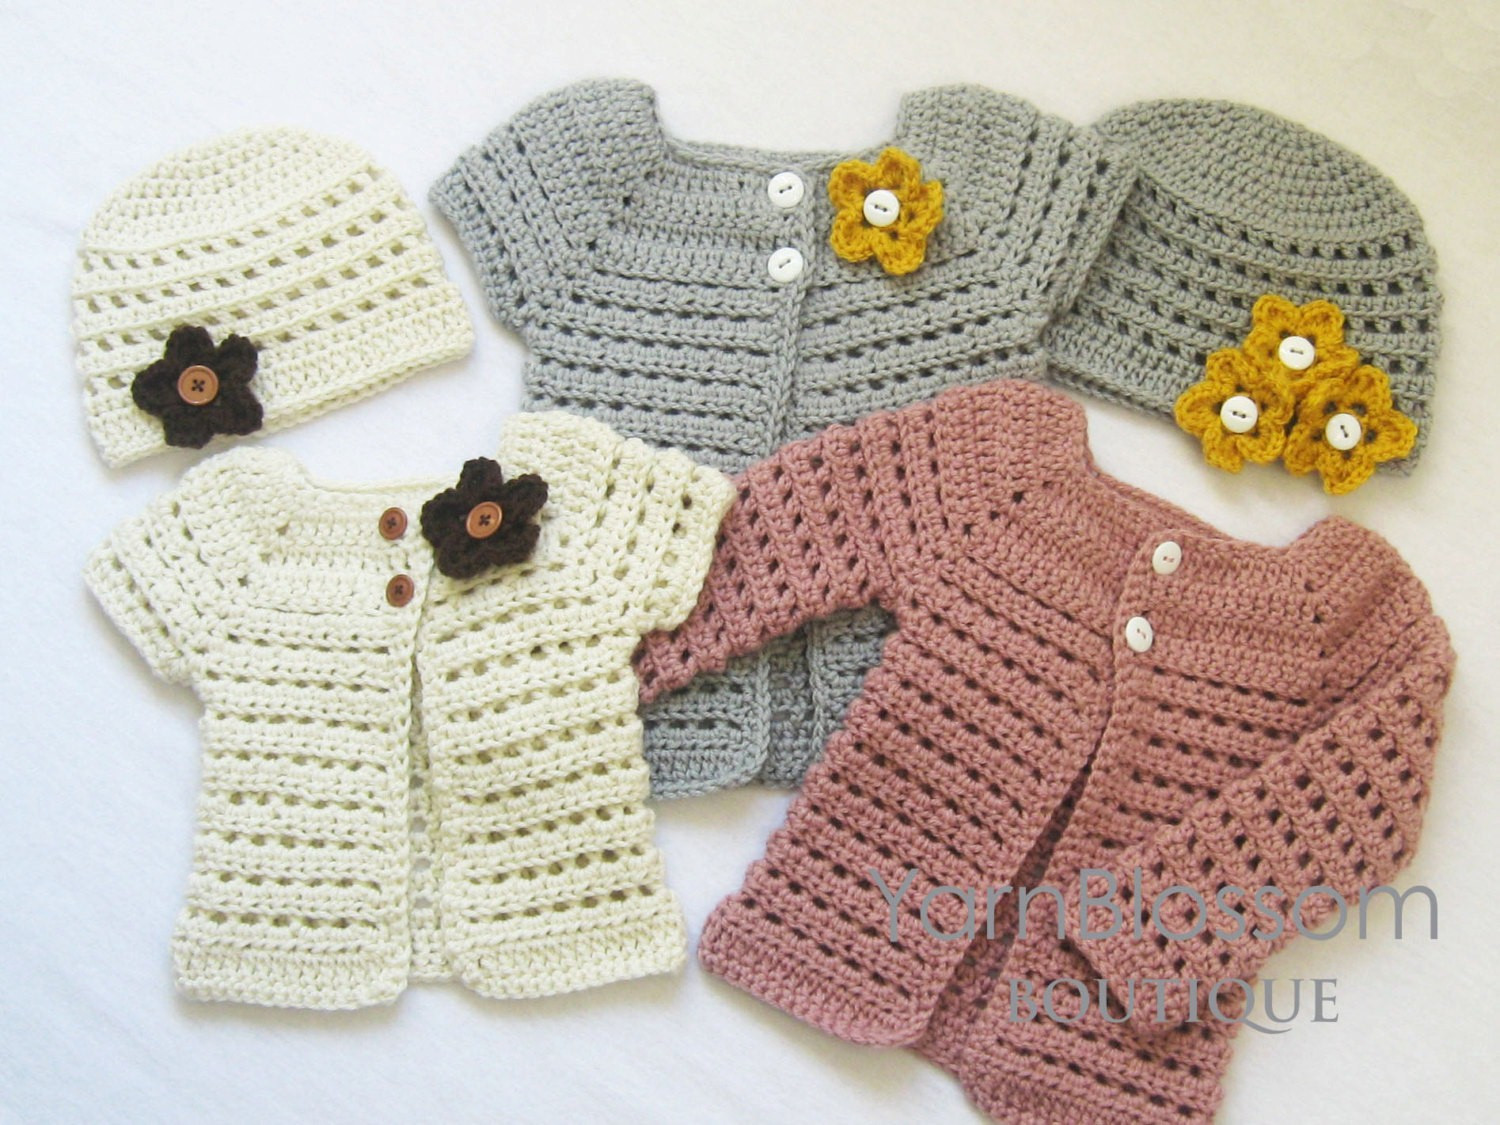 Baby Boy Crochet Patterns Beautiful Free Crochet Patterns for Baby Boy Clothes Of Awesome 41 Models Baby Boy Crochet Patterns